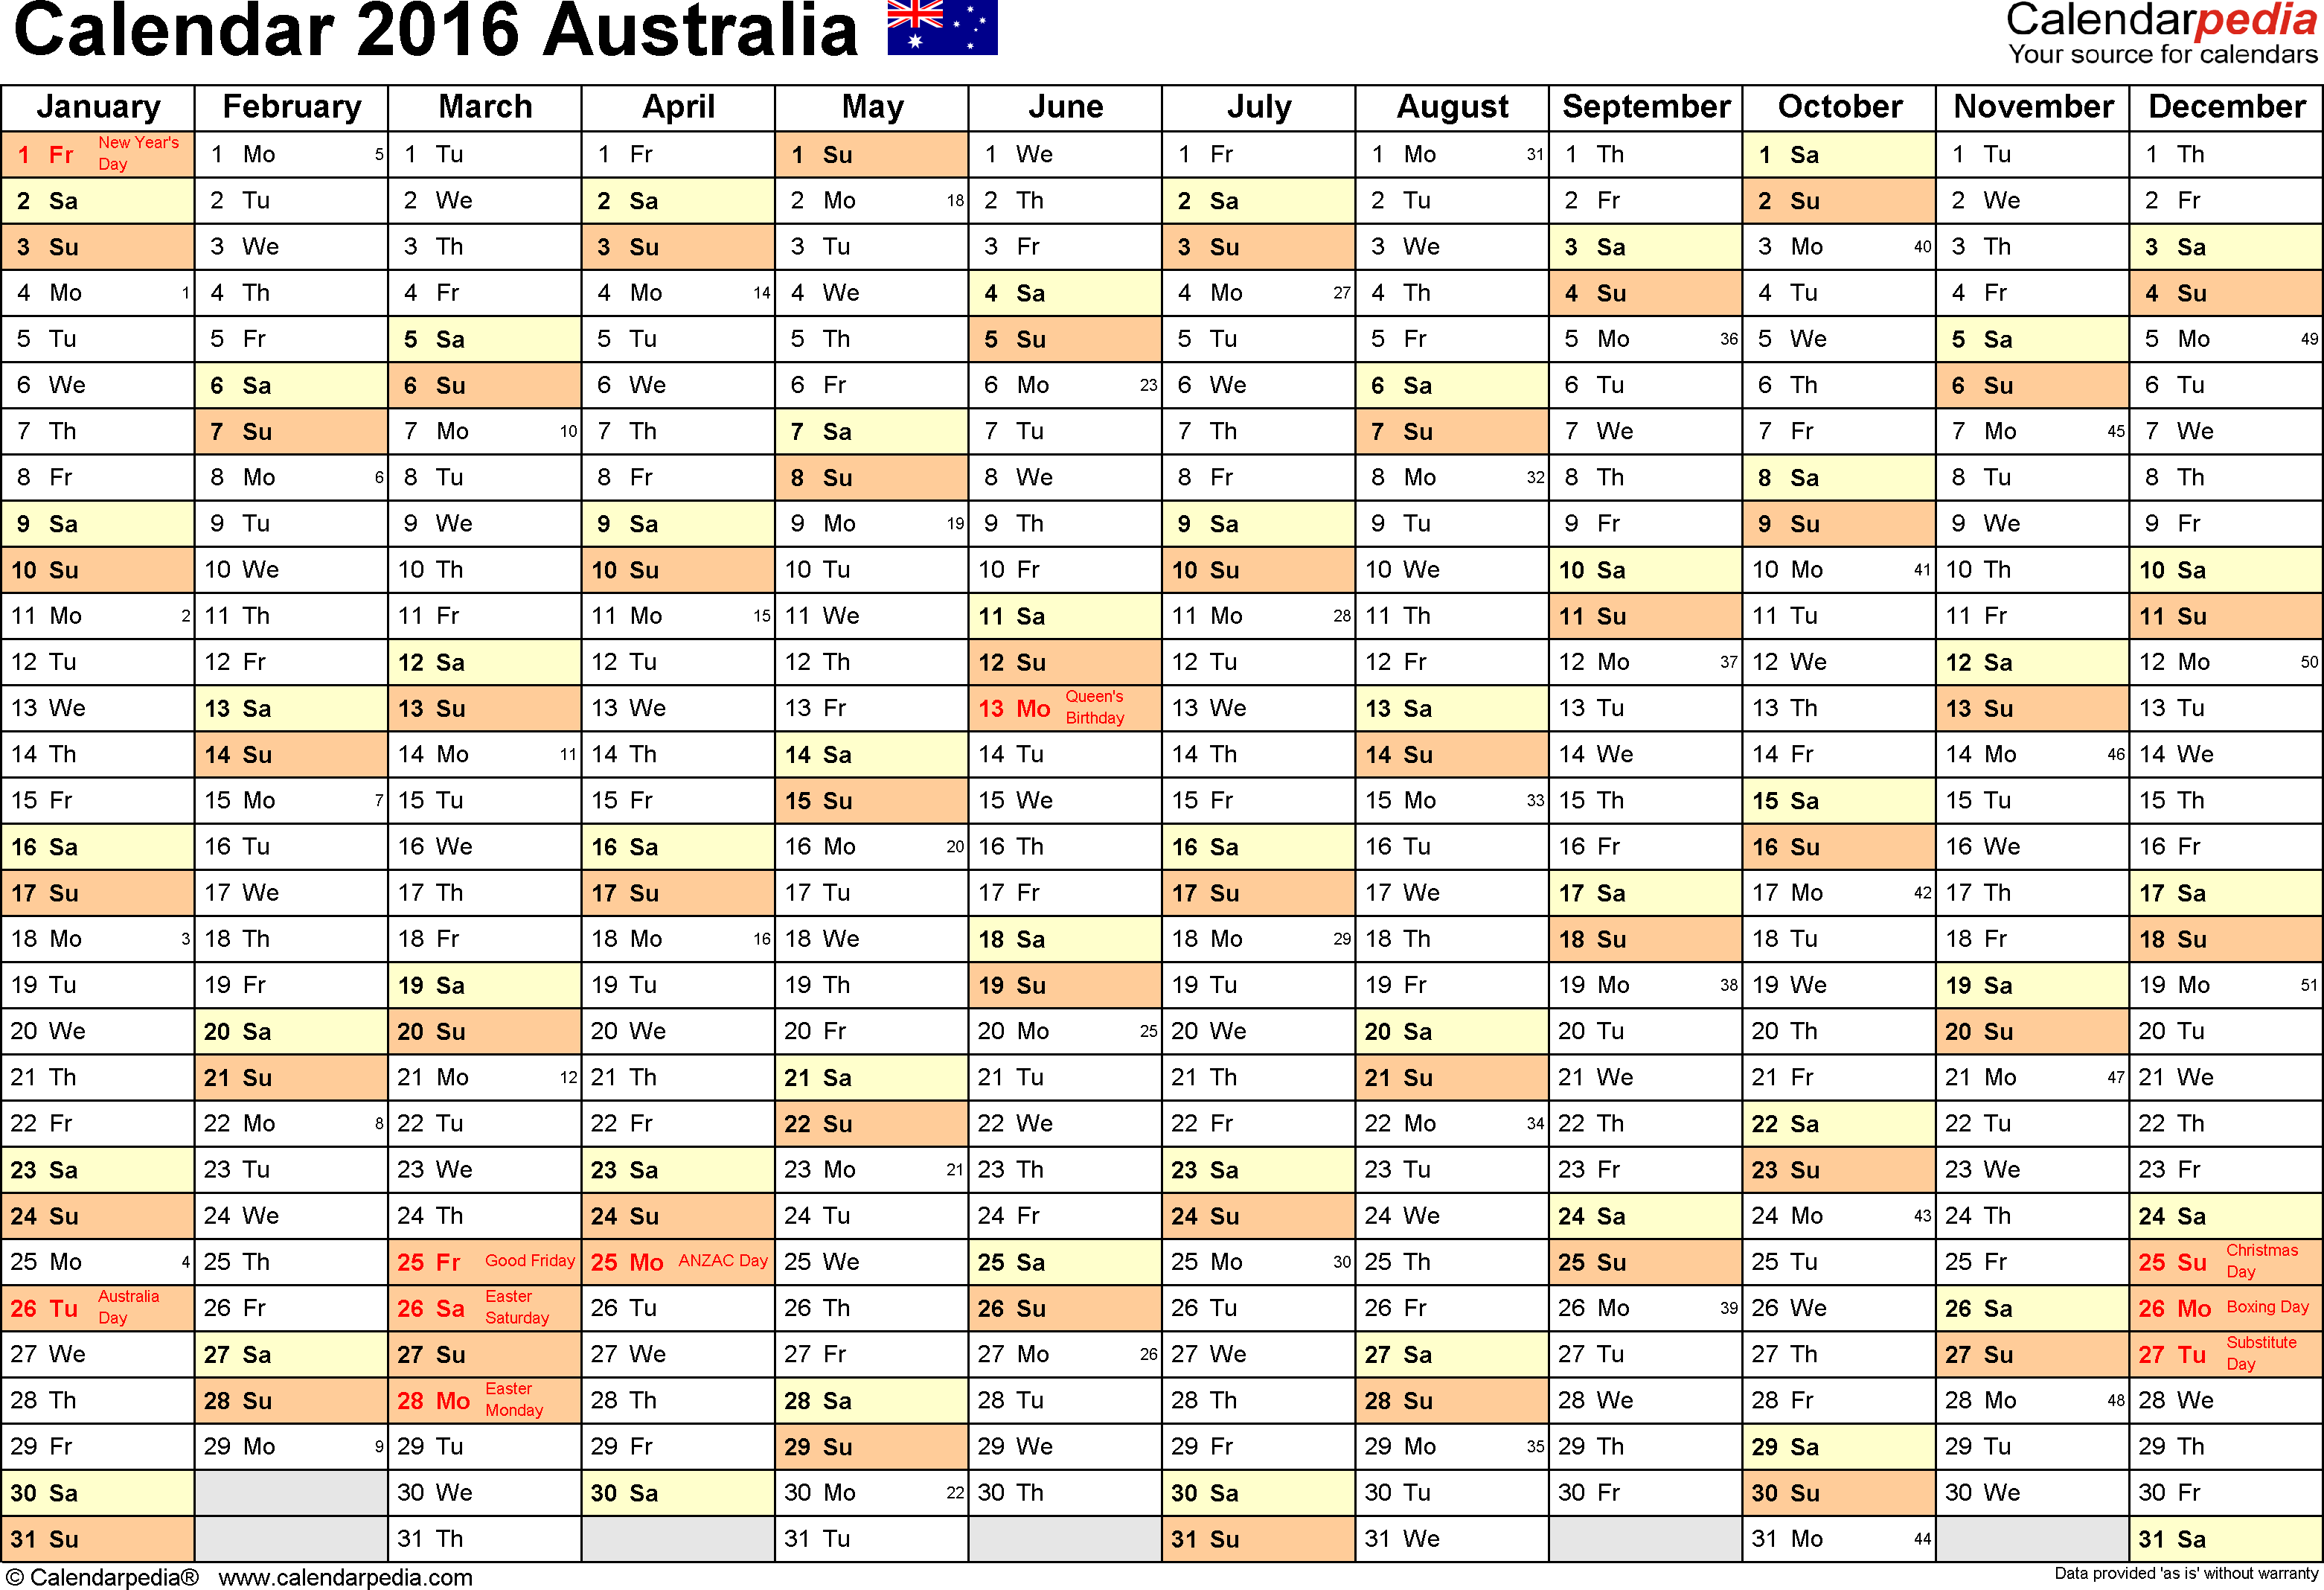 Download Template 2: Calendar 2016 Australia for Microsoft Excel (.xlsx file), landscape, 1 page